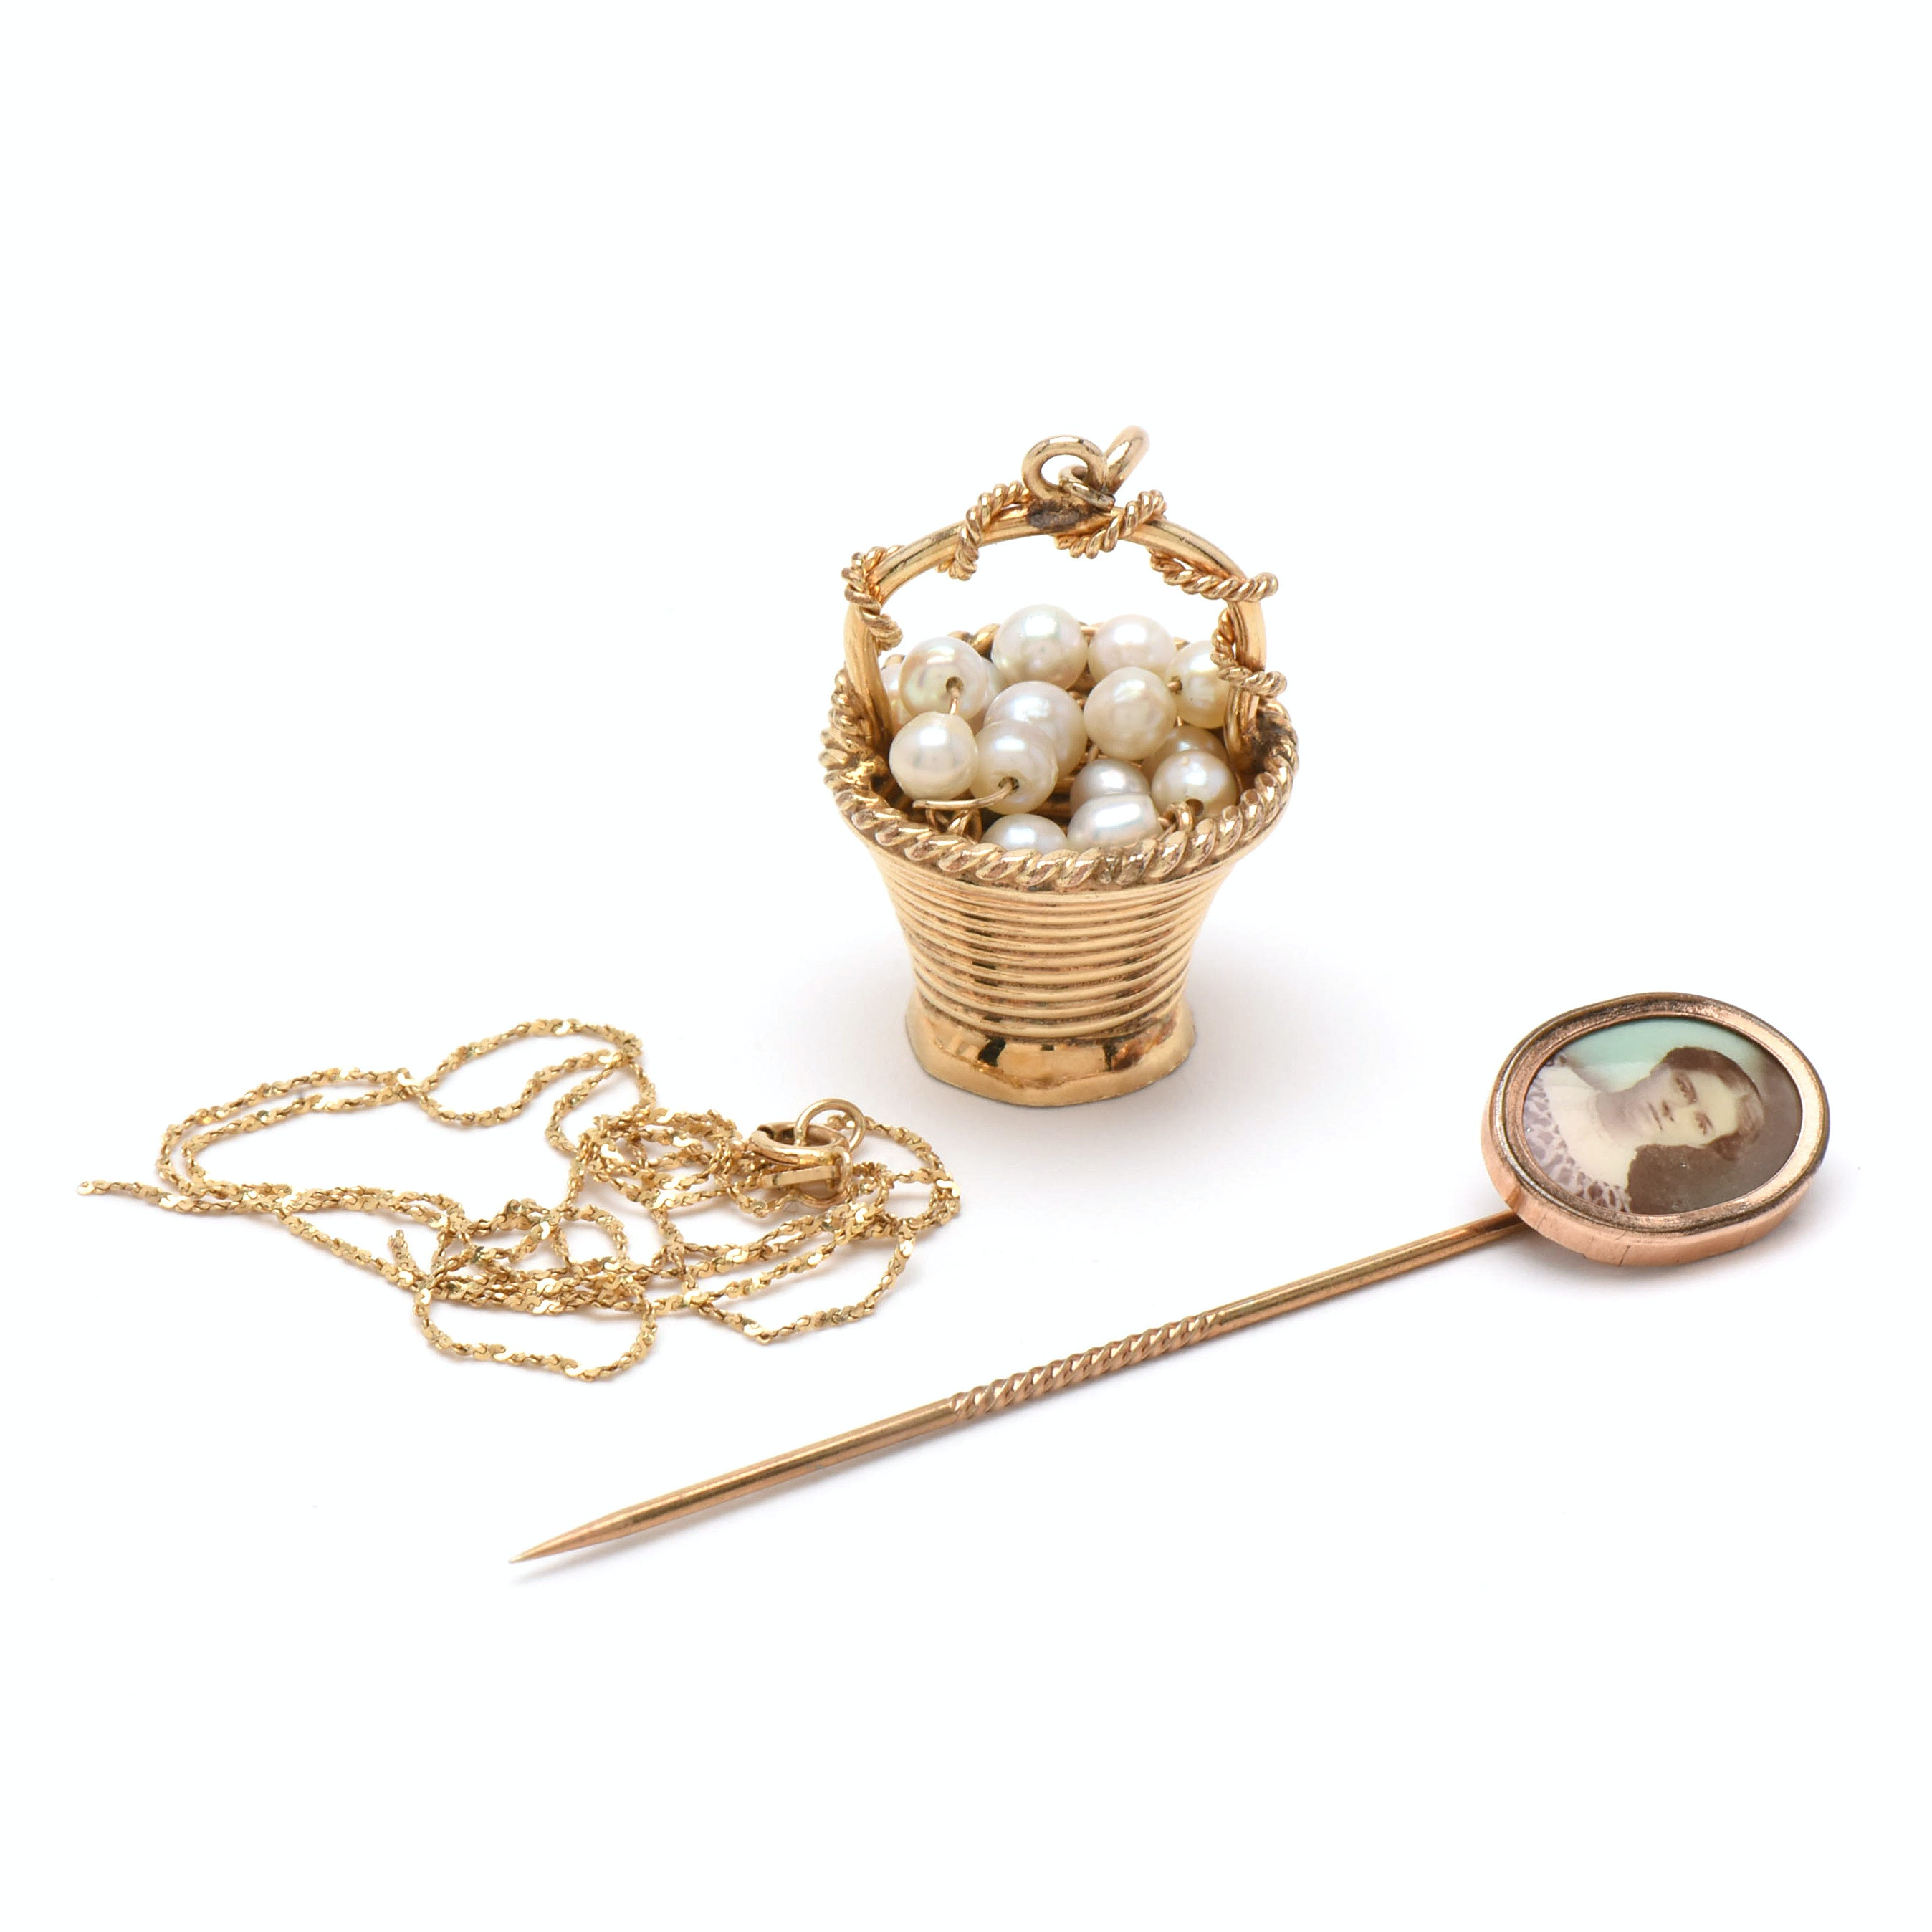 14K Yellow Gold Scrap Necklace, Gold-Filled Cultured Pearl Basket, and Stick Pin